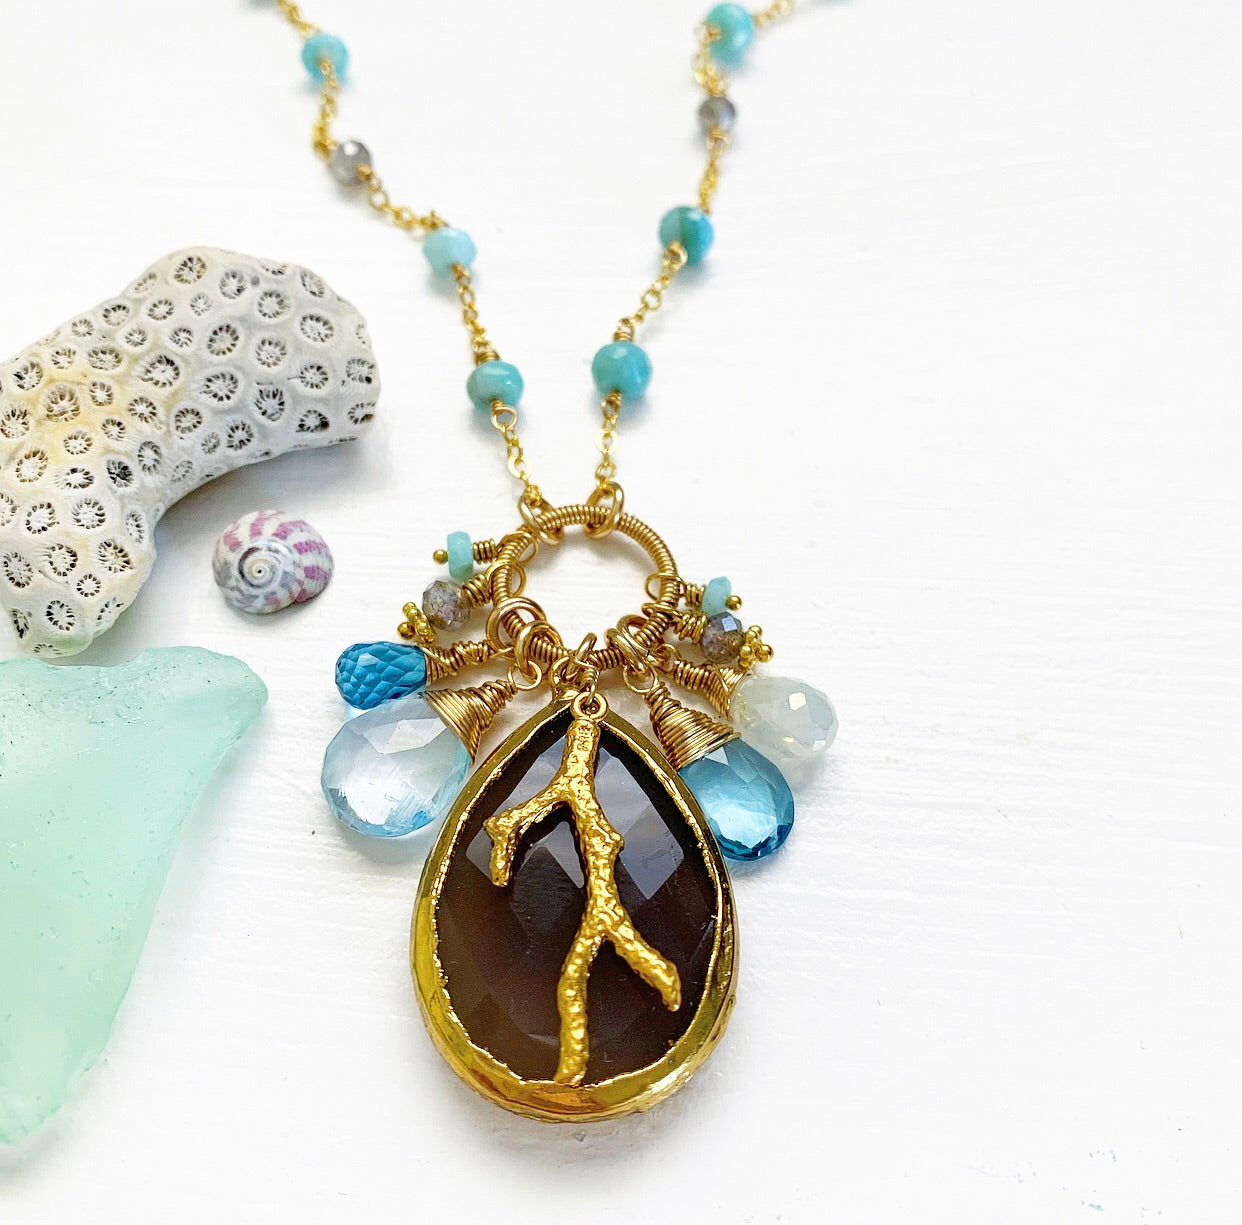 783-One of a Kind Gemstone Drop Necklace